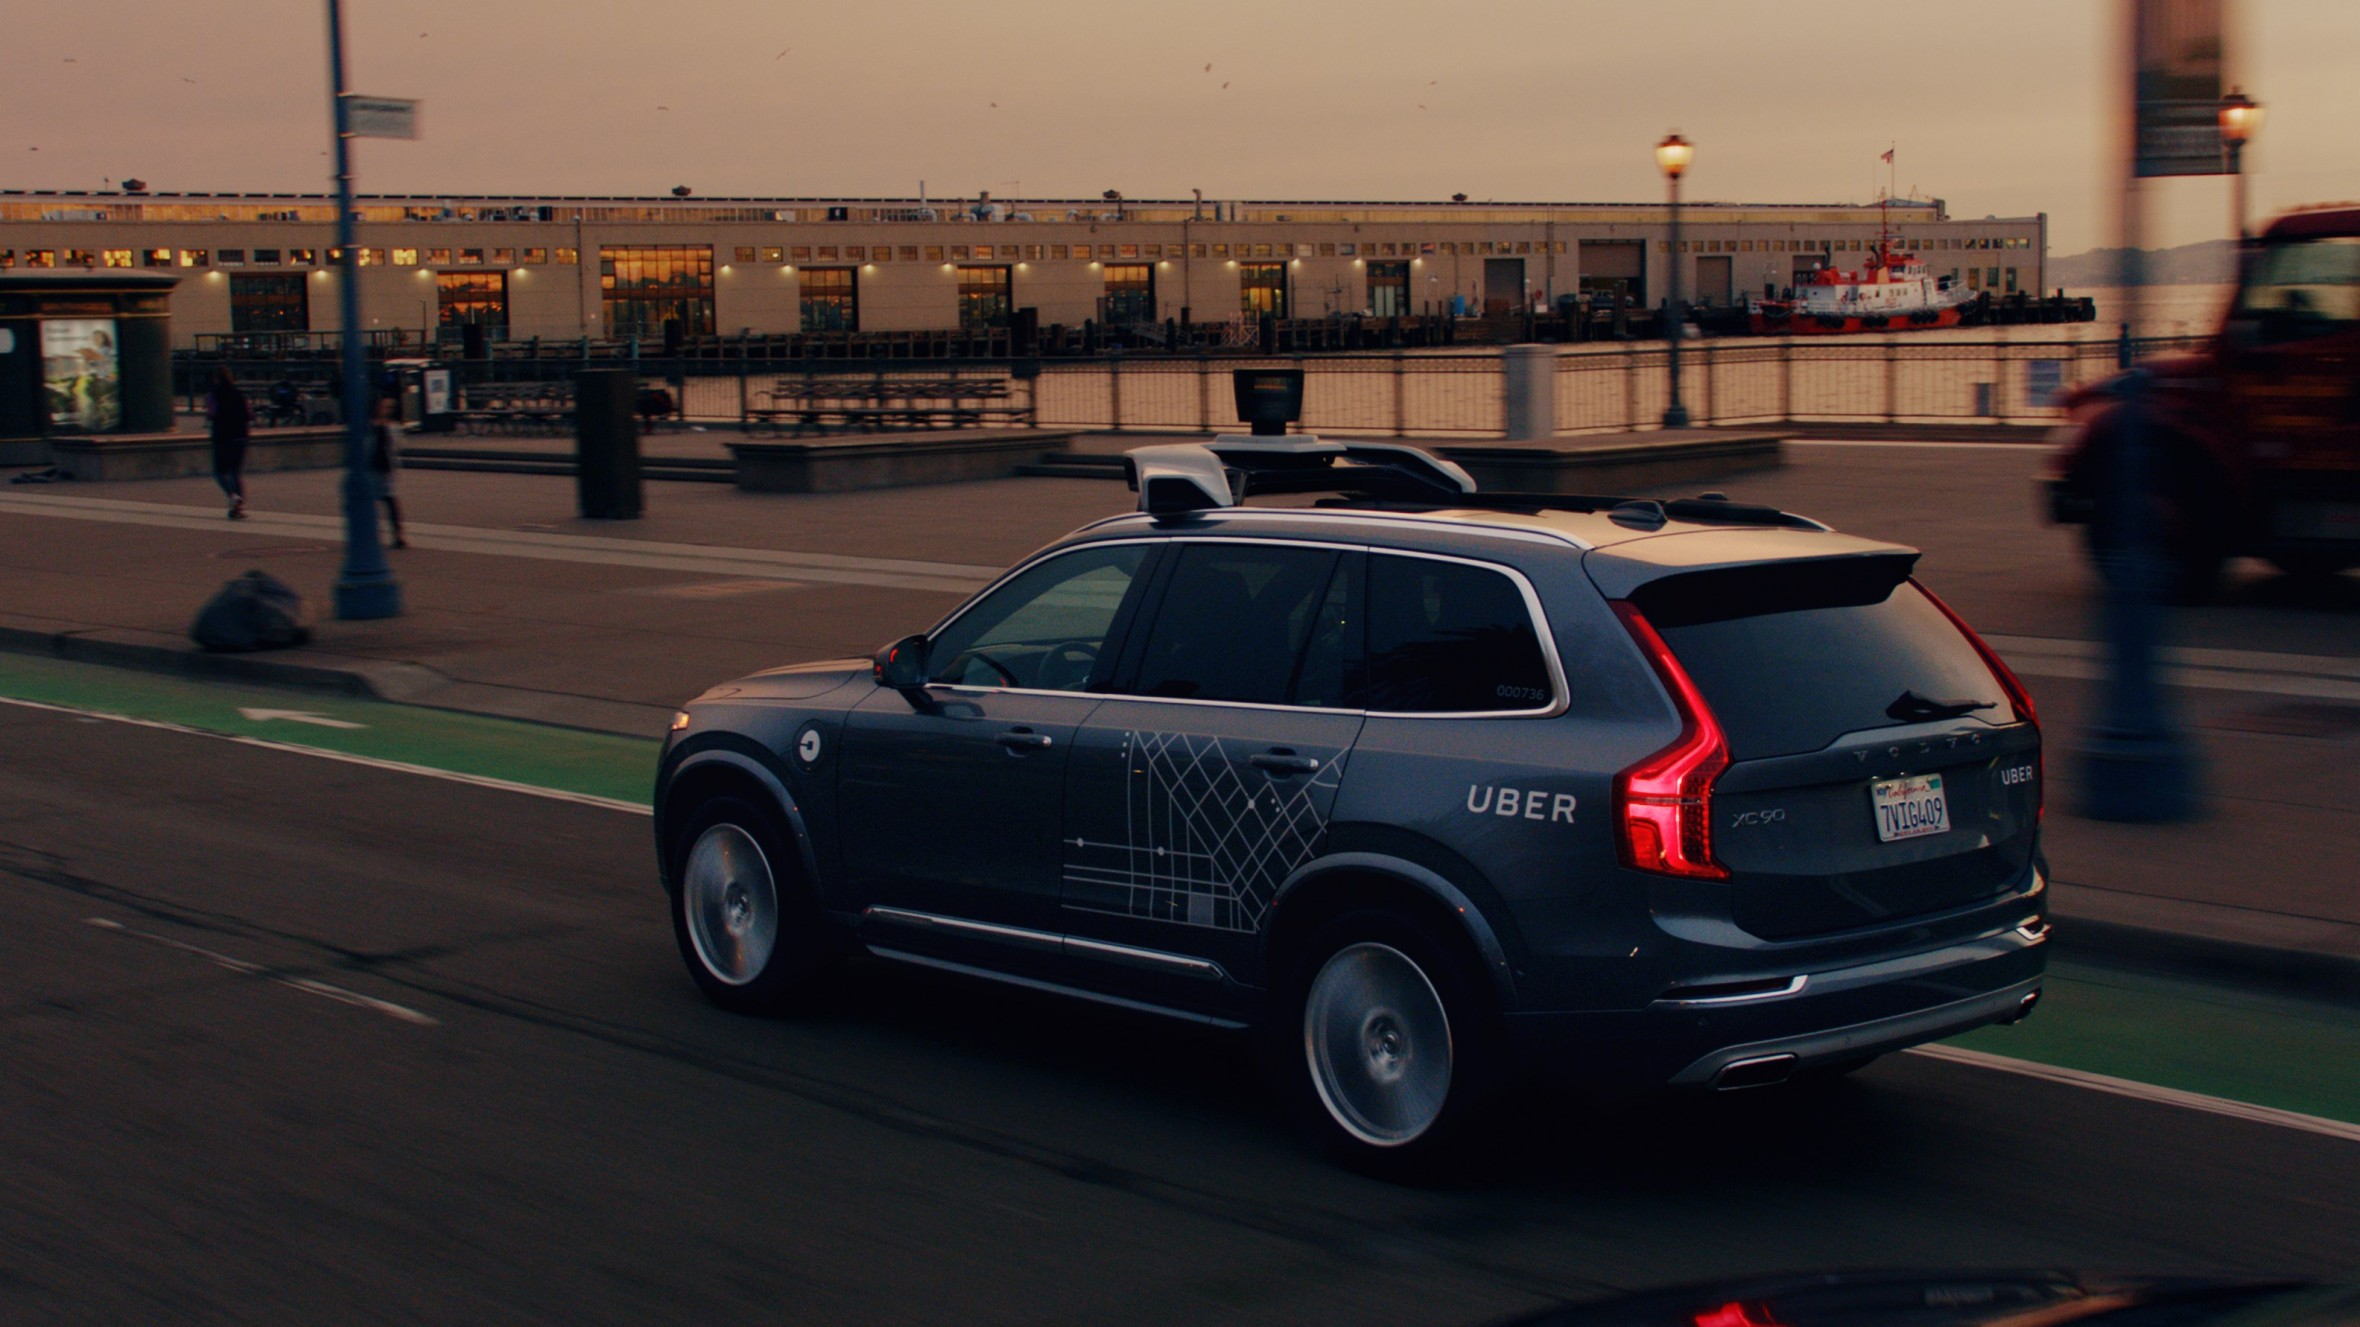 Uber Volvo XC90 autonomous vehicle, image from  MIT Technology Review article